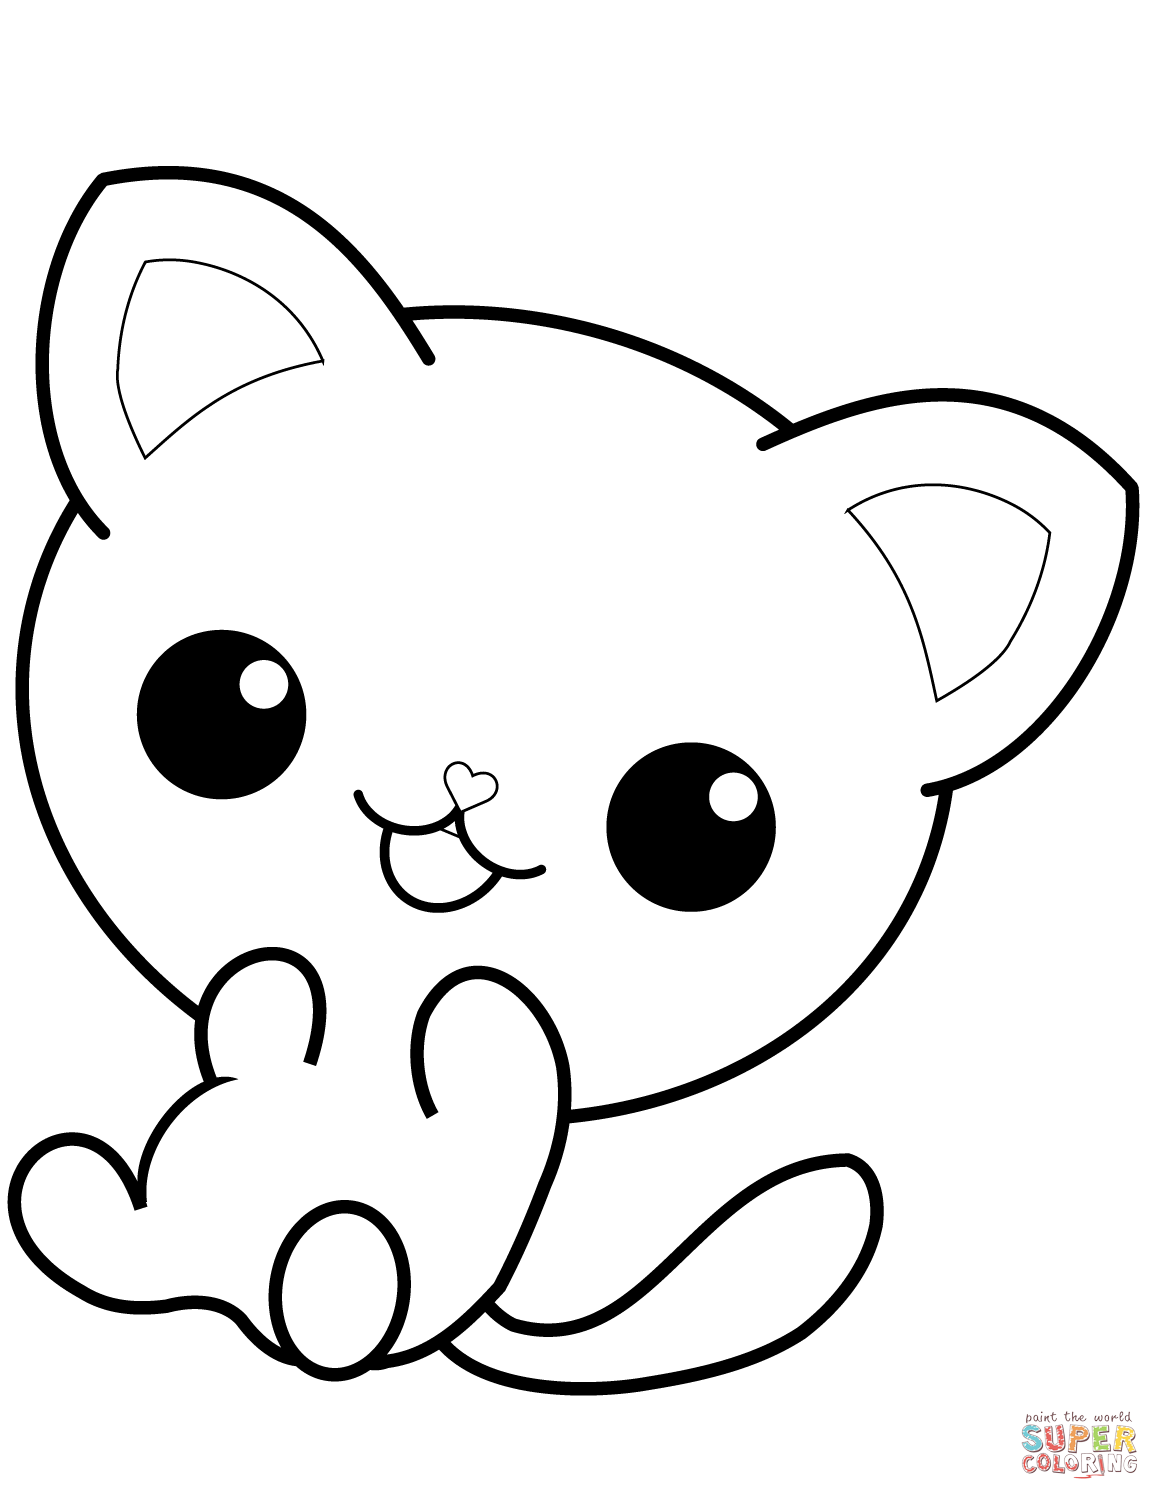 Kawaii Kitty Coloring Page Free Printable Coloring Pages